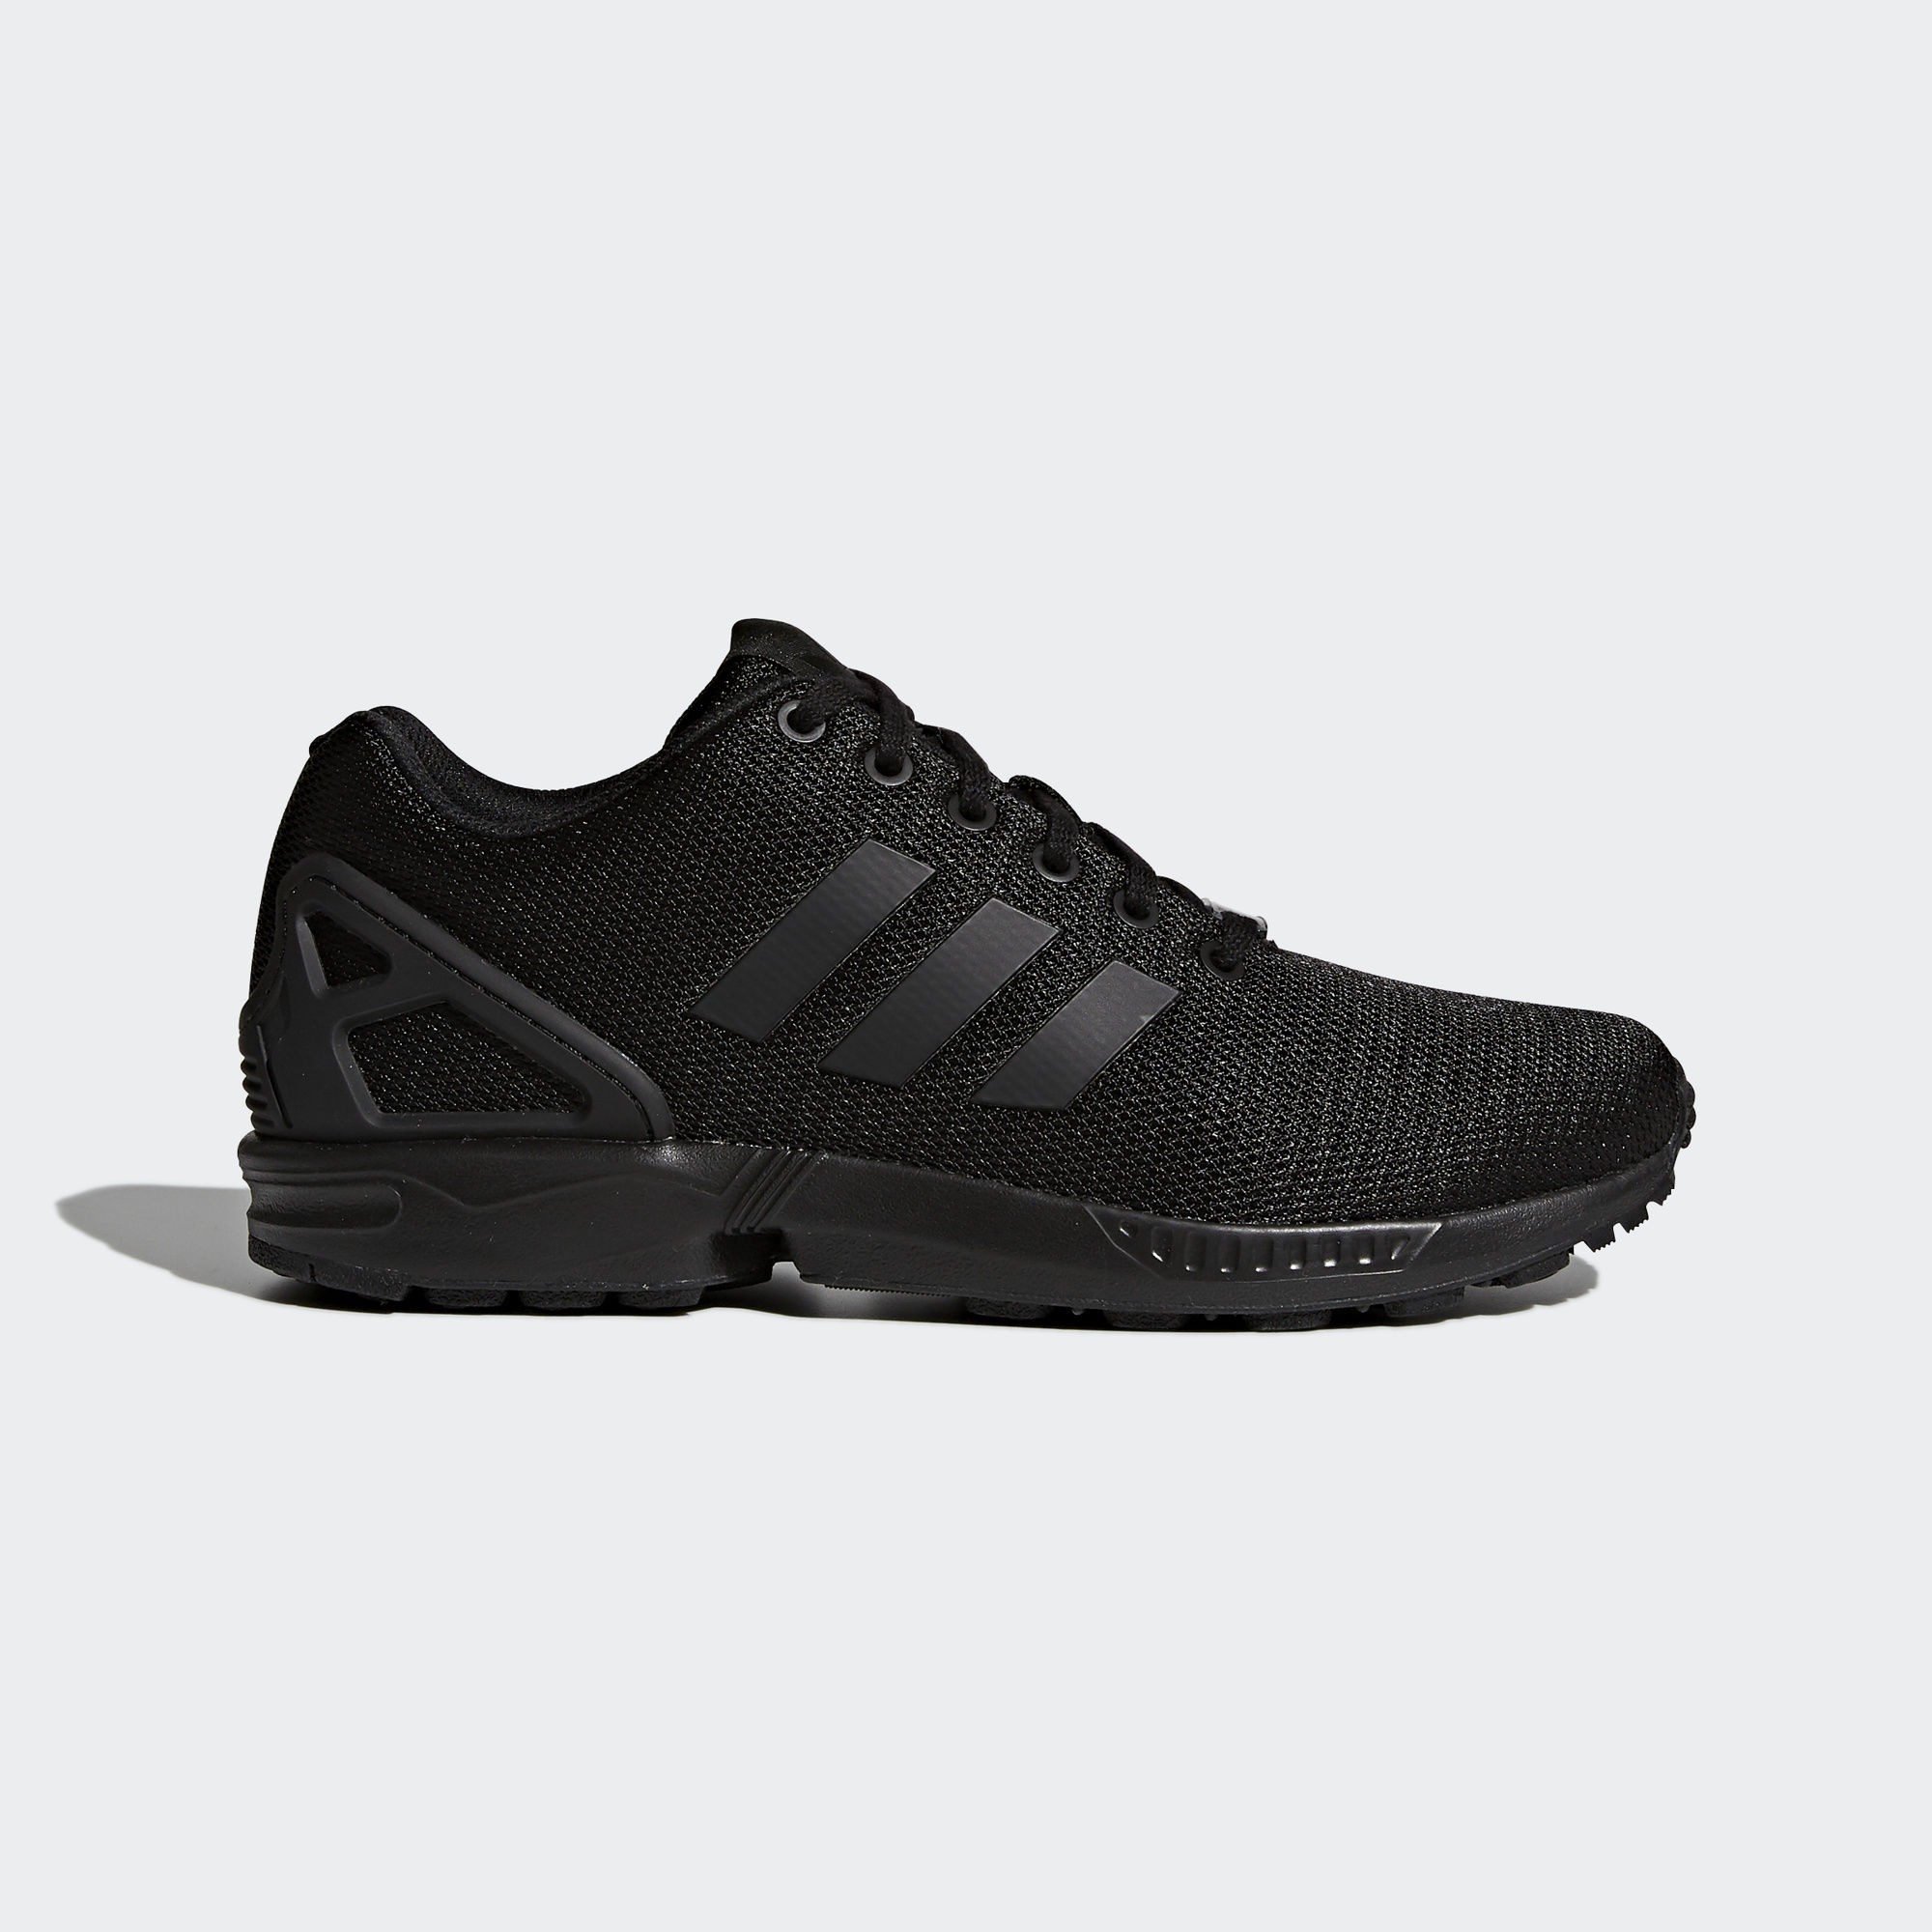 quality design 38d32 3d3bf Adidas Flux : Buy cheap Adidas shoes online - Clvyall.com